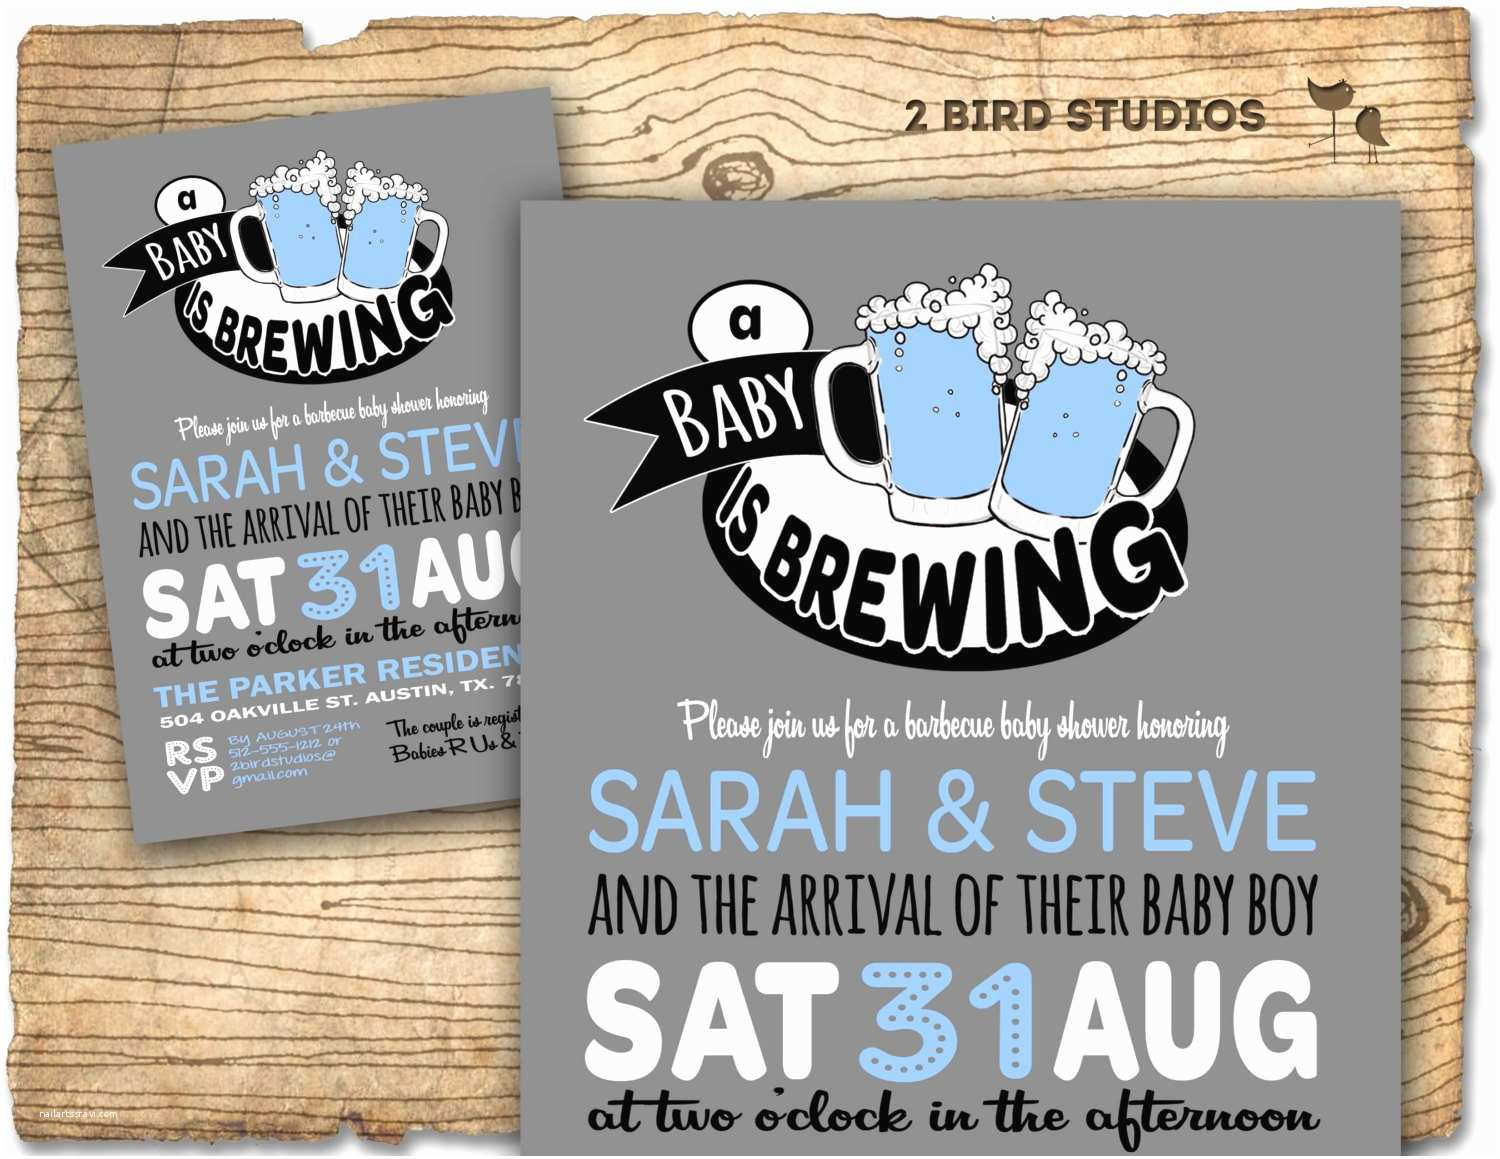 Coed Baby Shower Invitations Baby Q Beer Baby Shower Invitation Baby Q Baby Shower